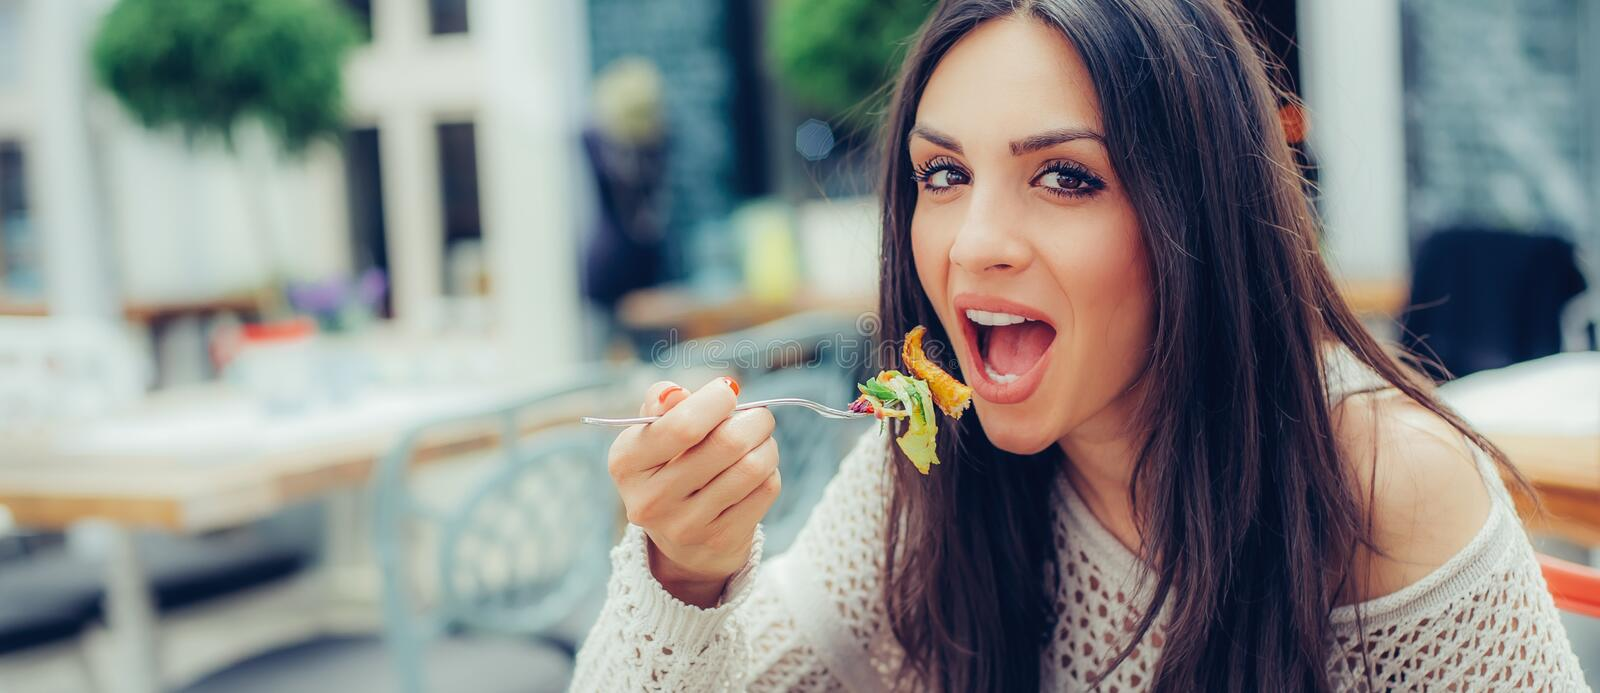 Young woman enjoying food in a restaurant, having her lunch break royalty free stock photos